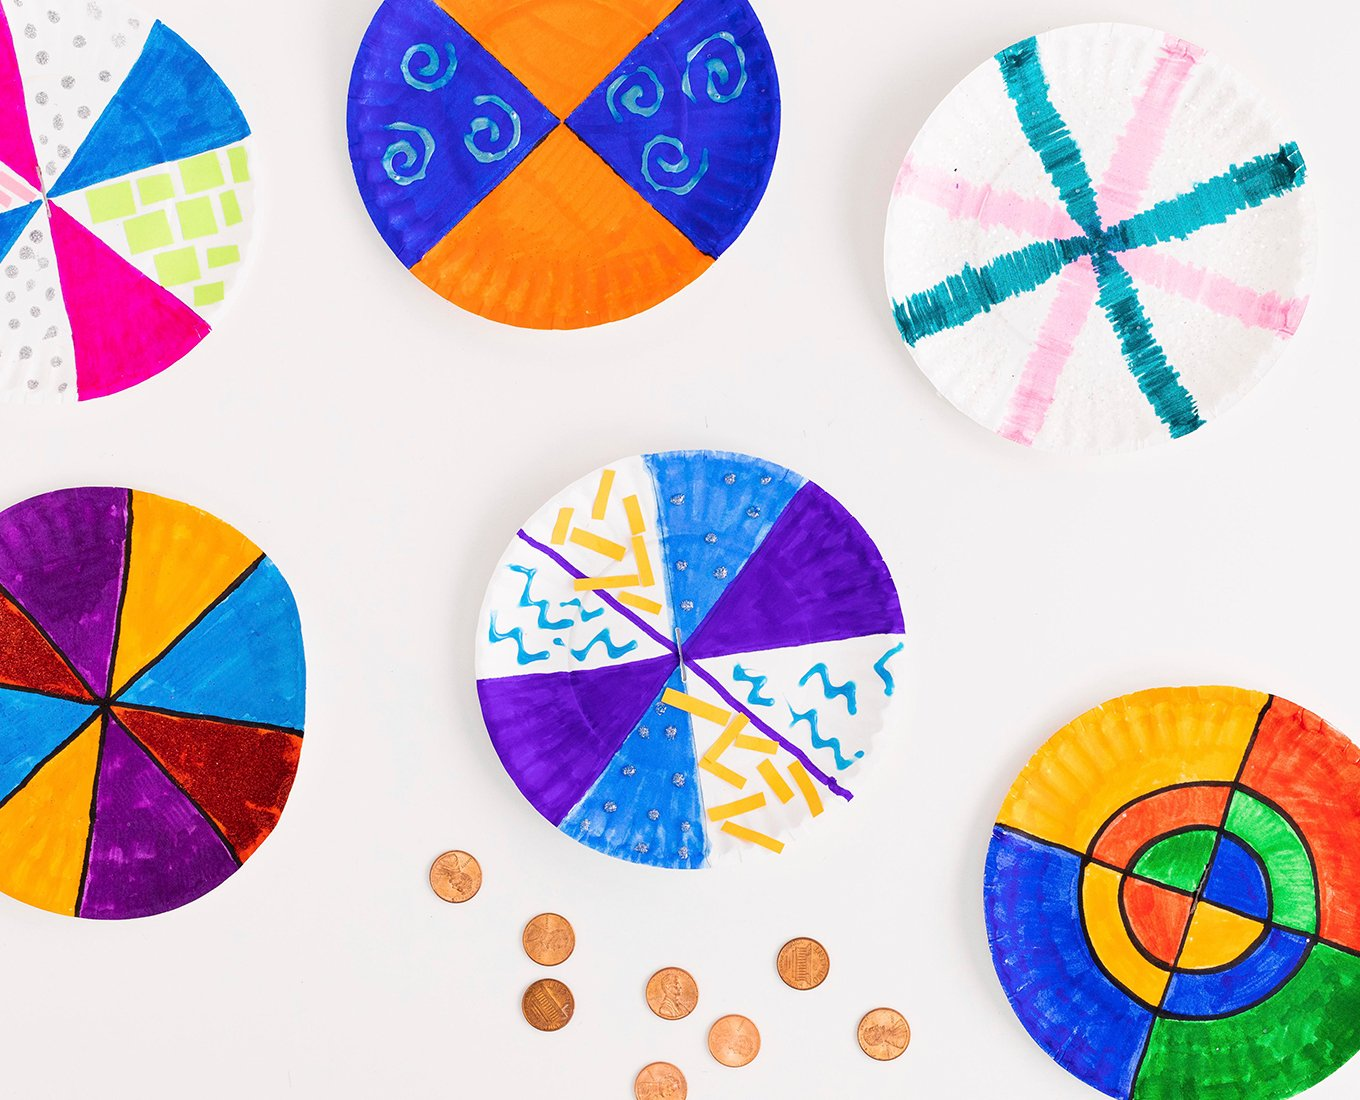 penny spinner at home activity